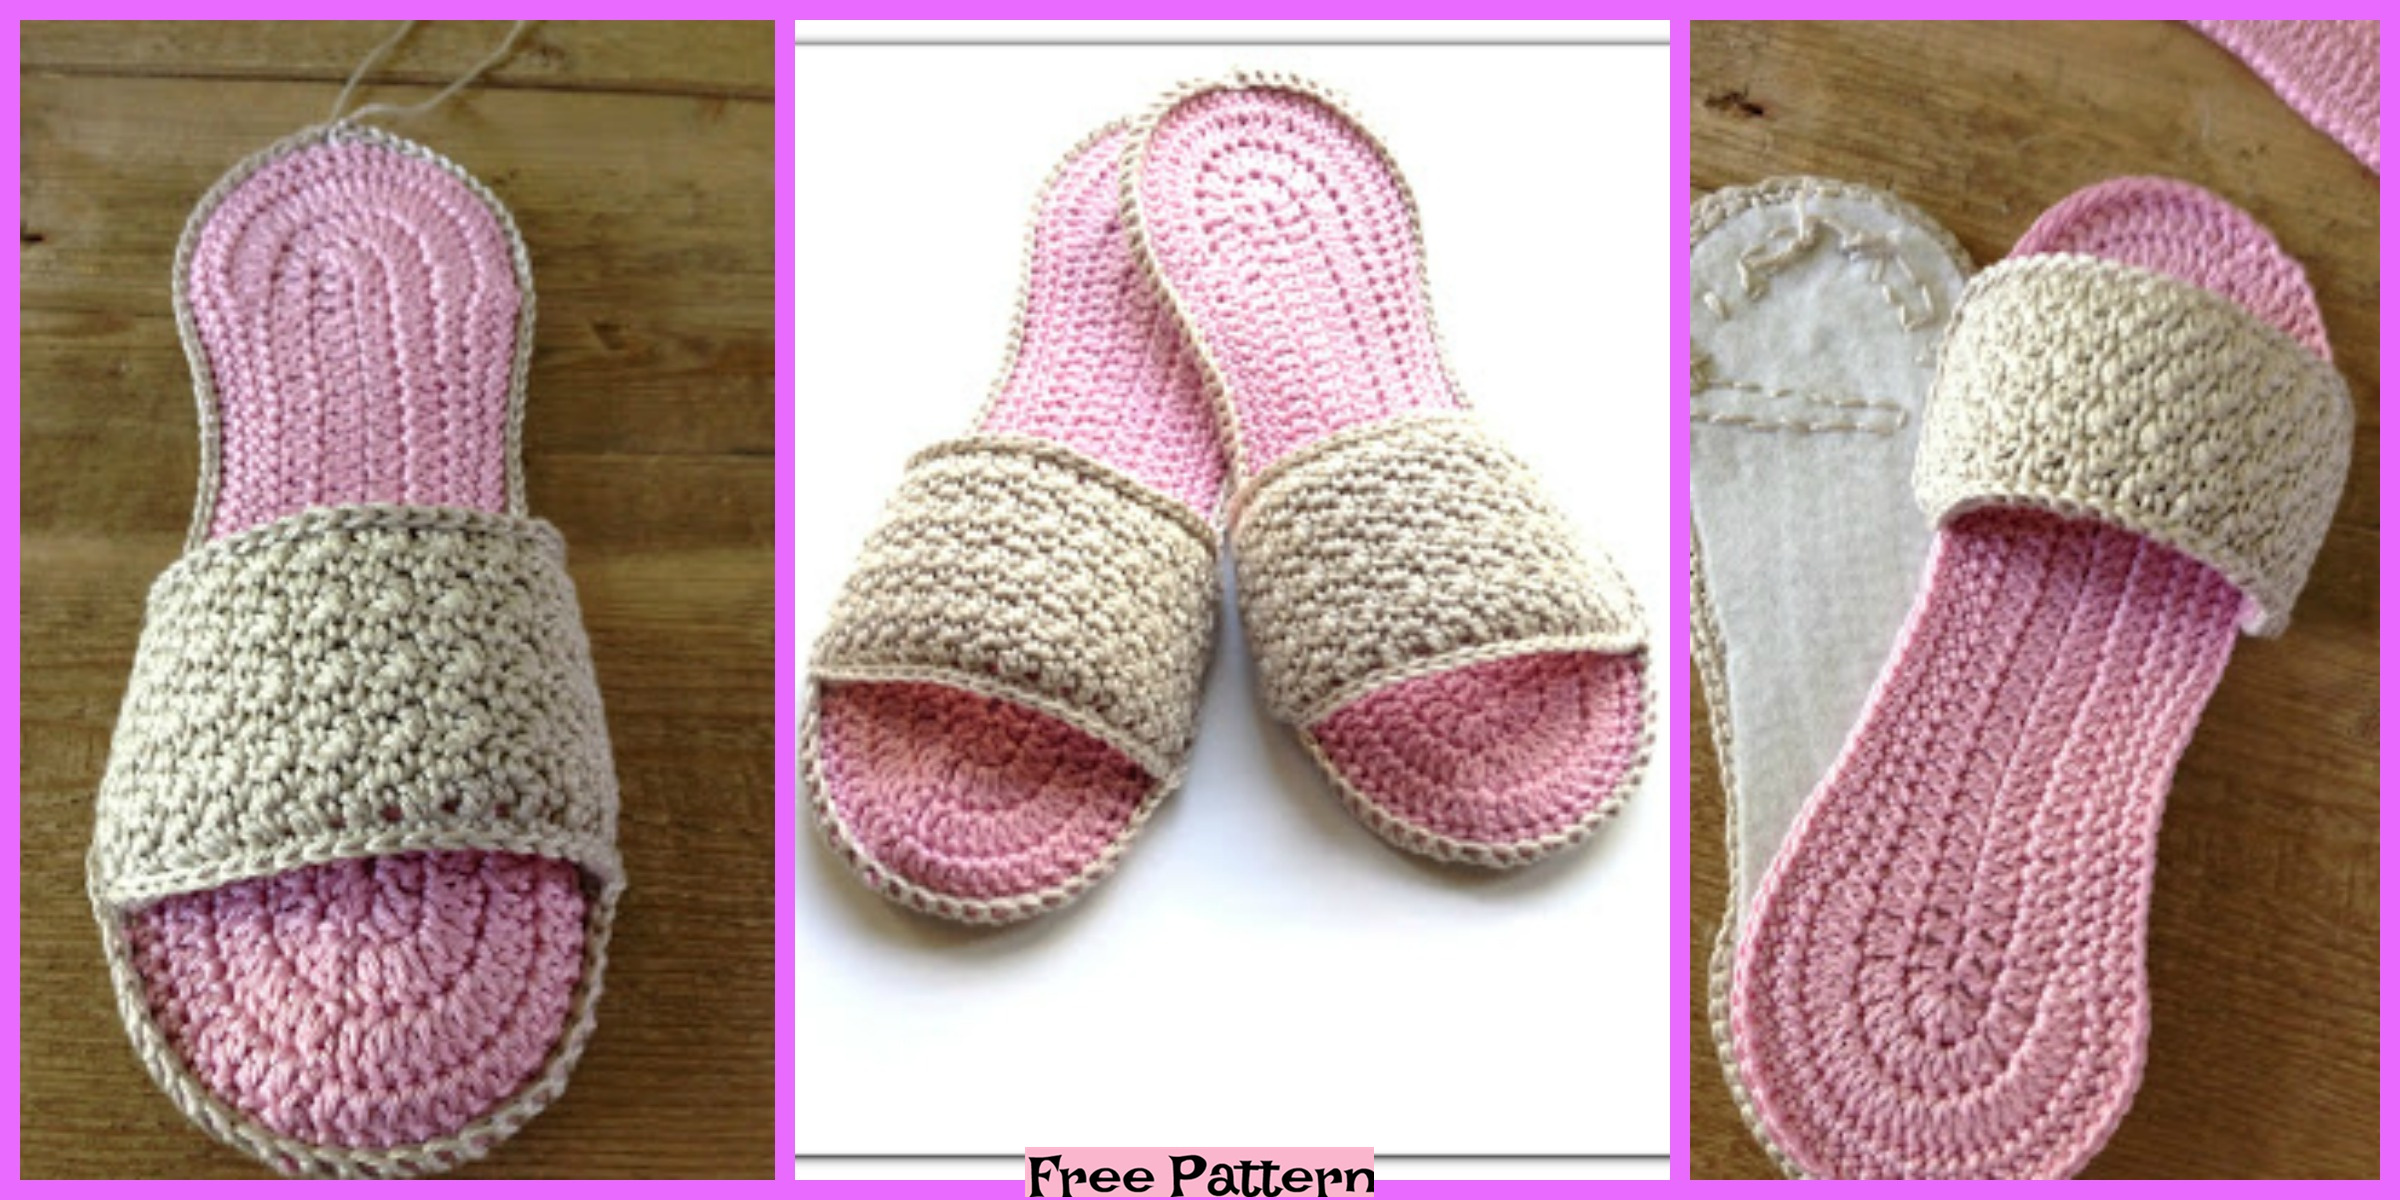 Crochet Spa Slippers – Free Pattern